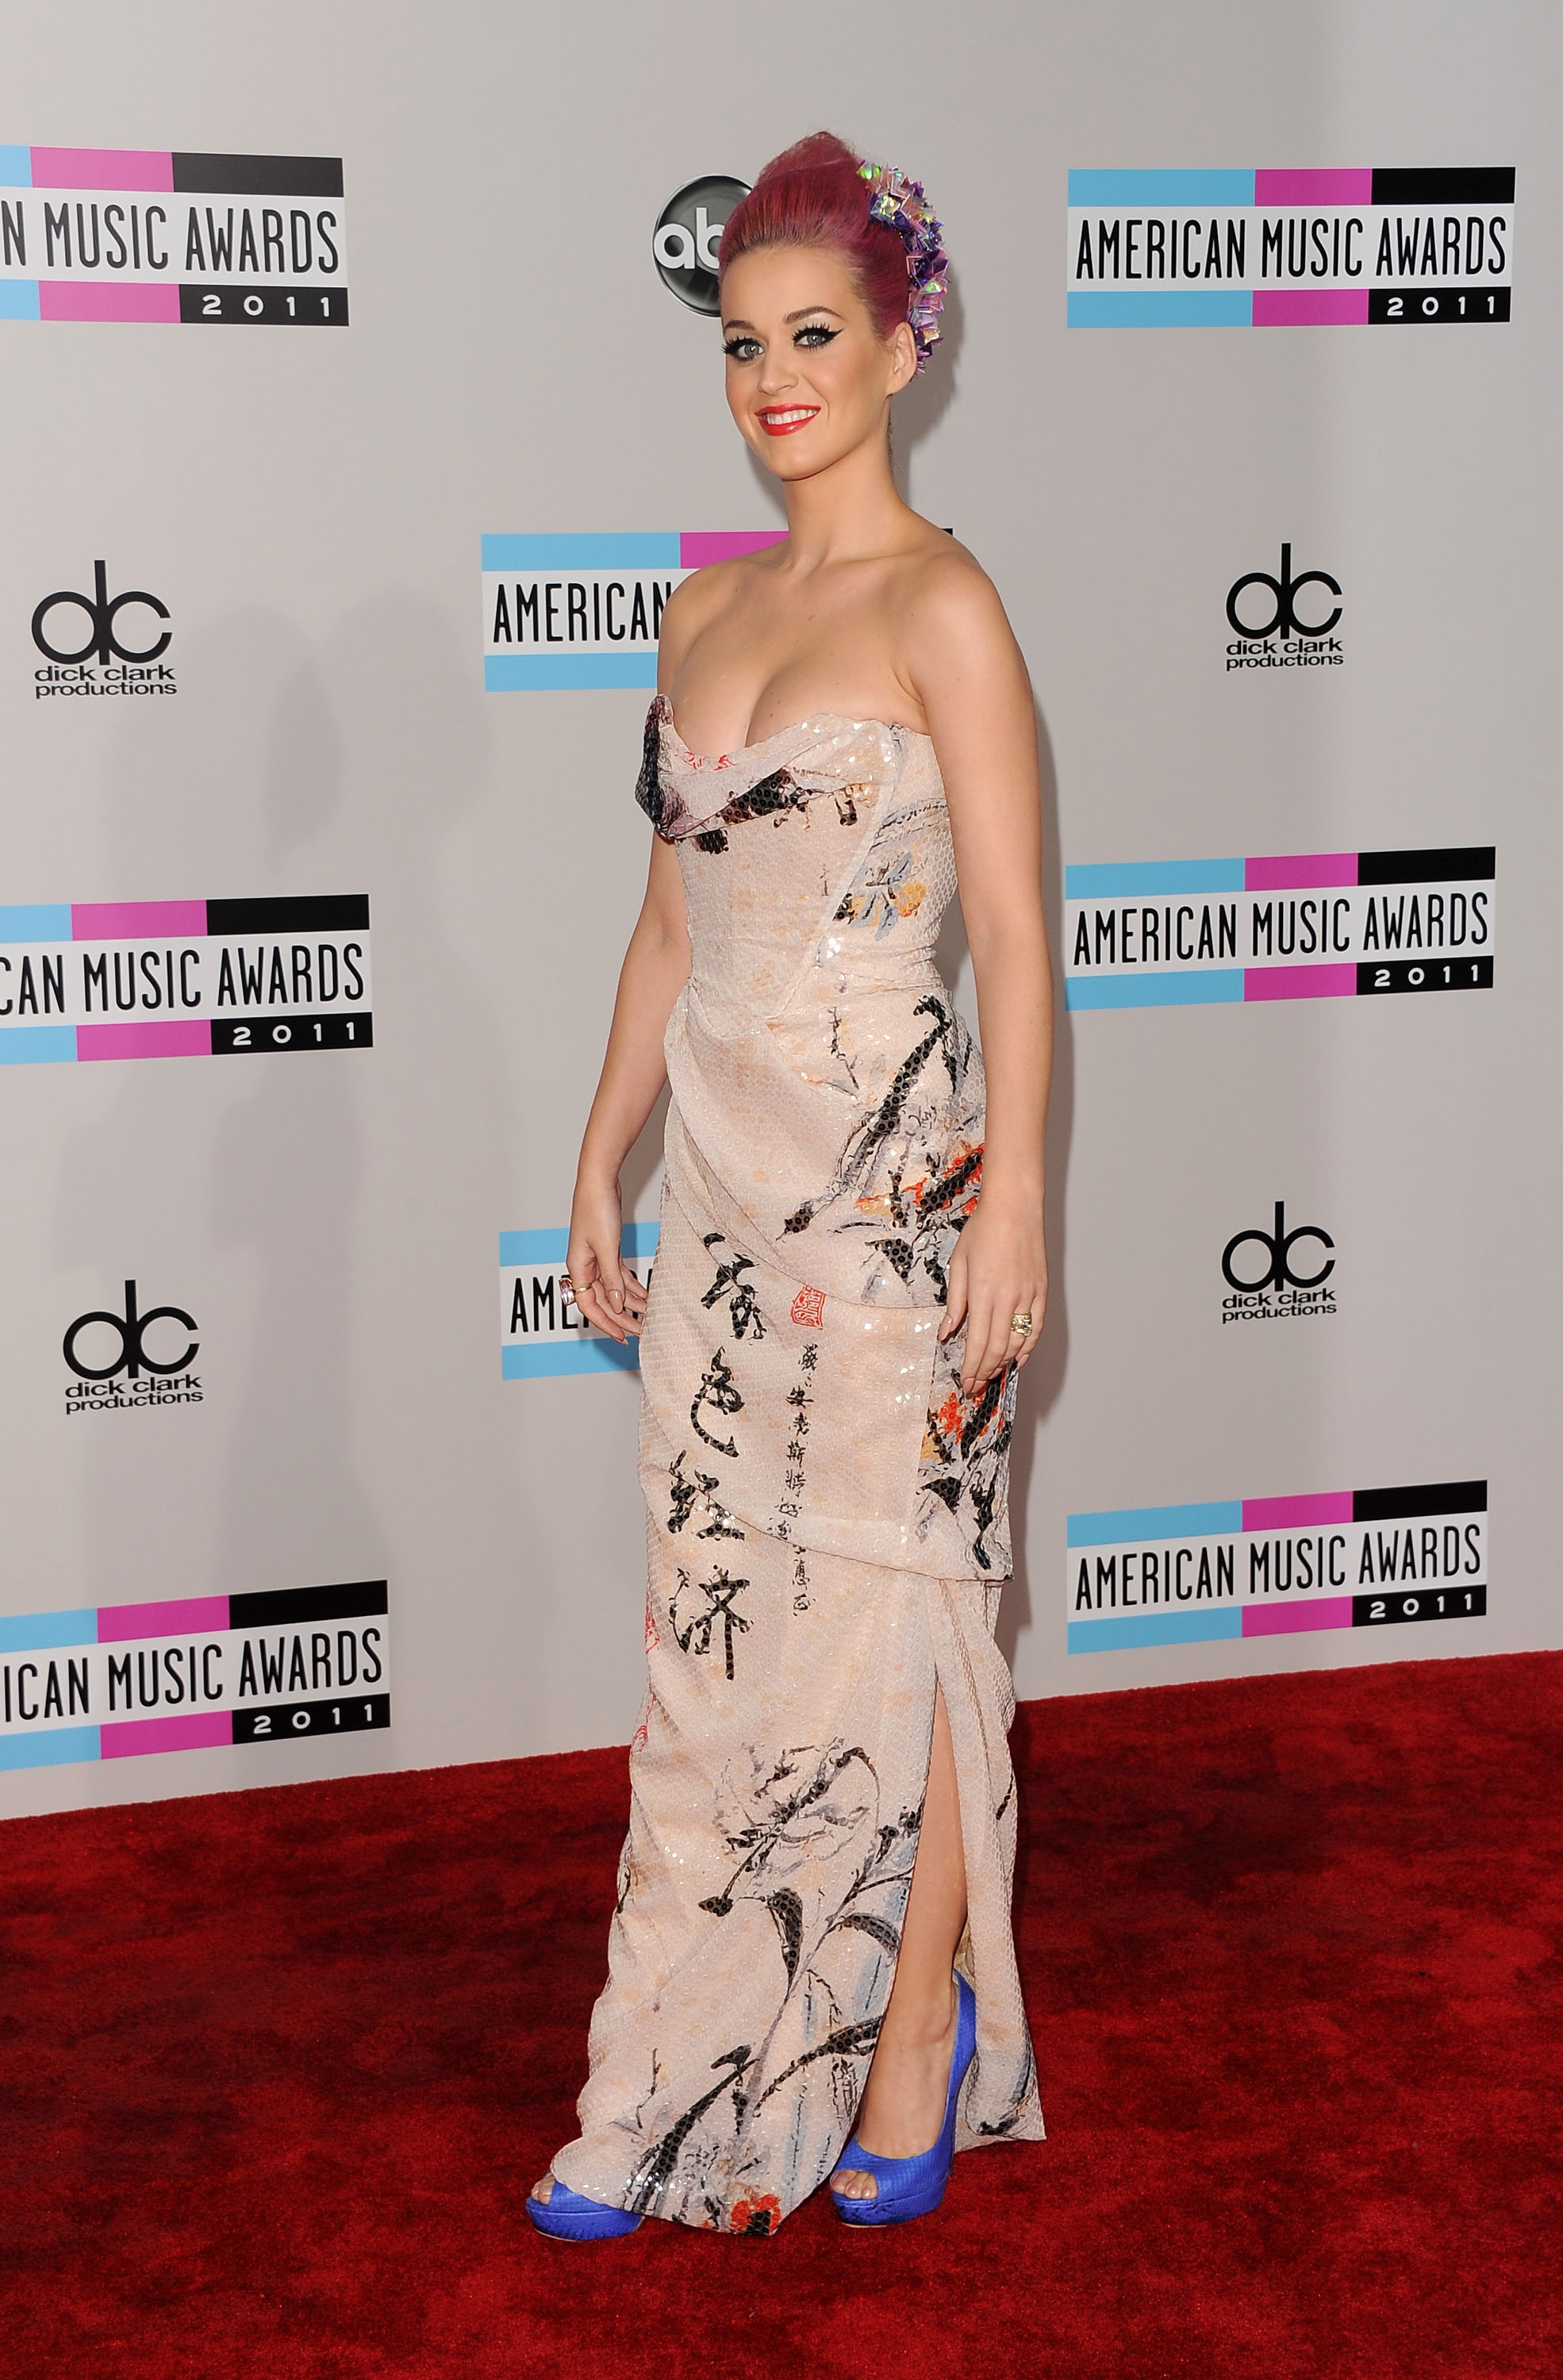 Katy Perry arriving at the American Music Awards.